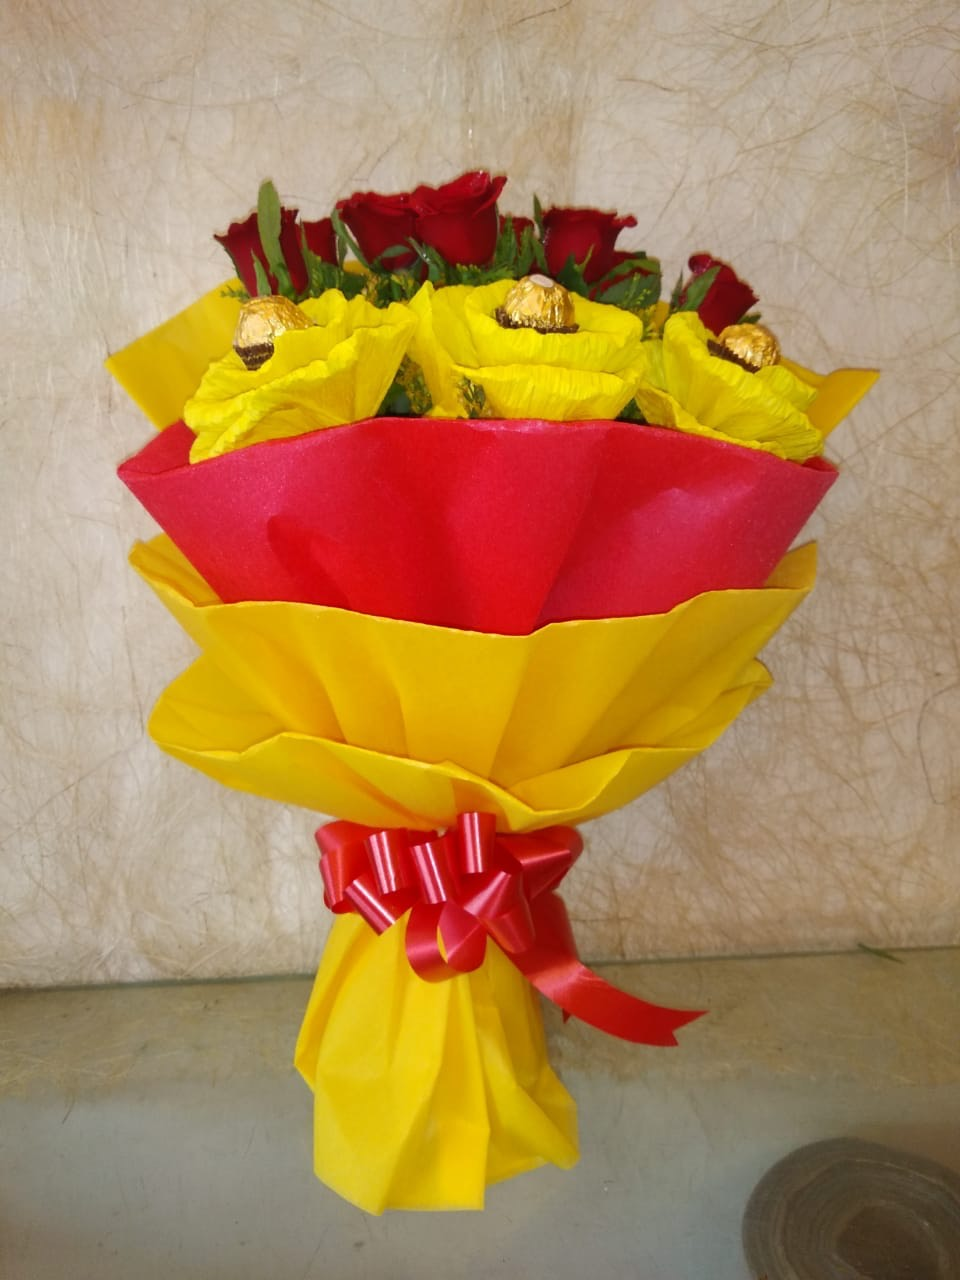 Flowers Delivery to Sector 125 NoidaRed Roses Ferrero Rocher Bunch